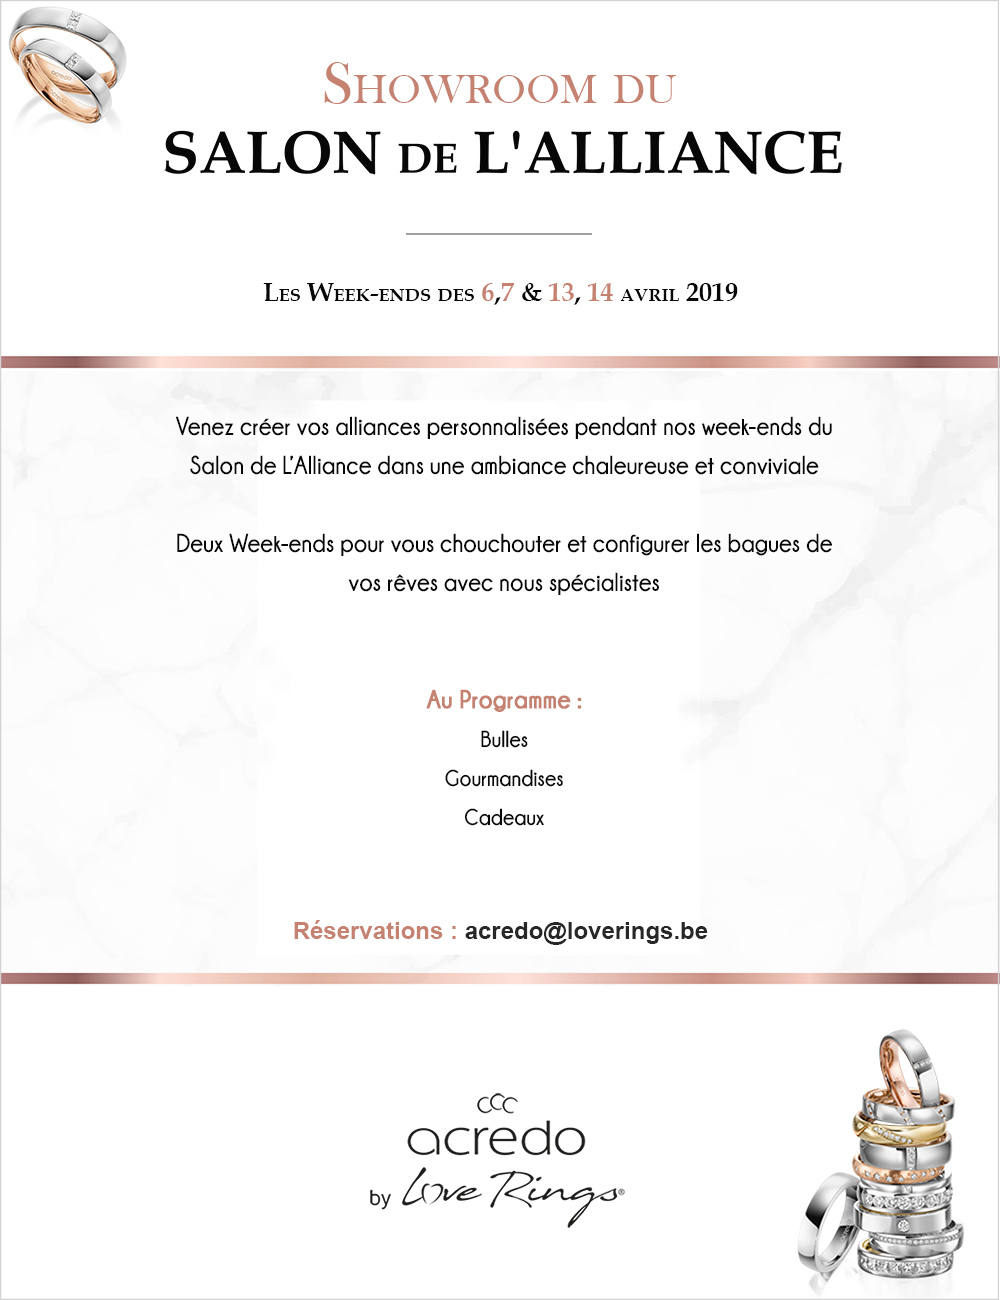 showroom du salon de l'alliance